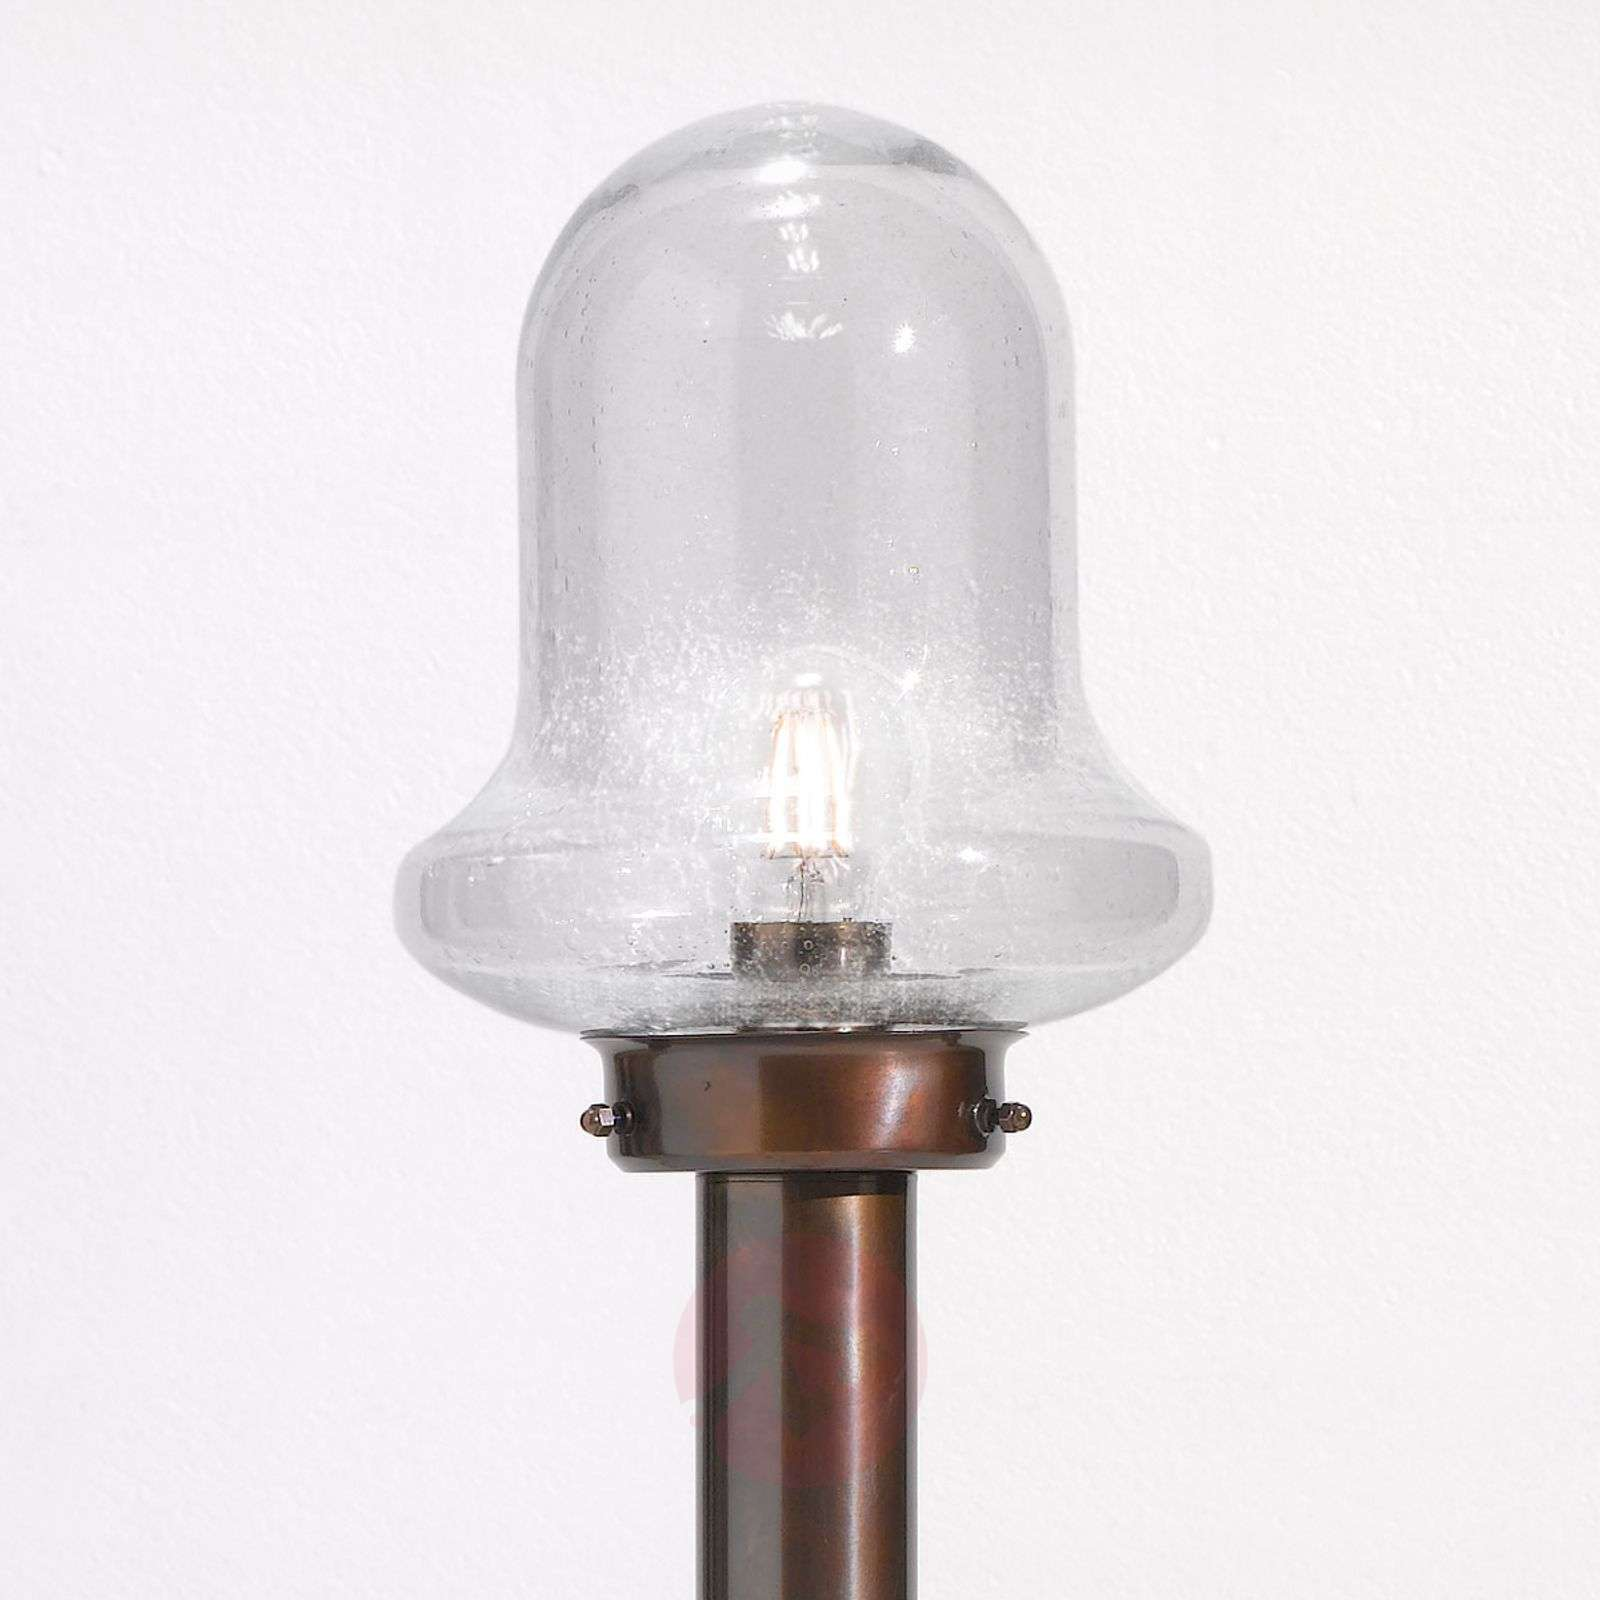 Casale burnished path light with clear glass-2008253-01